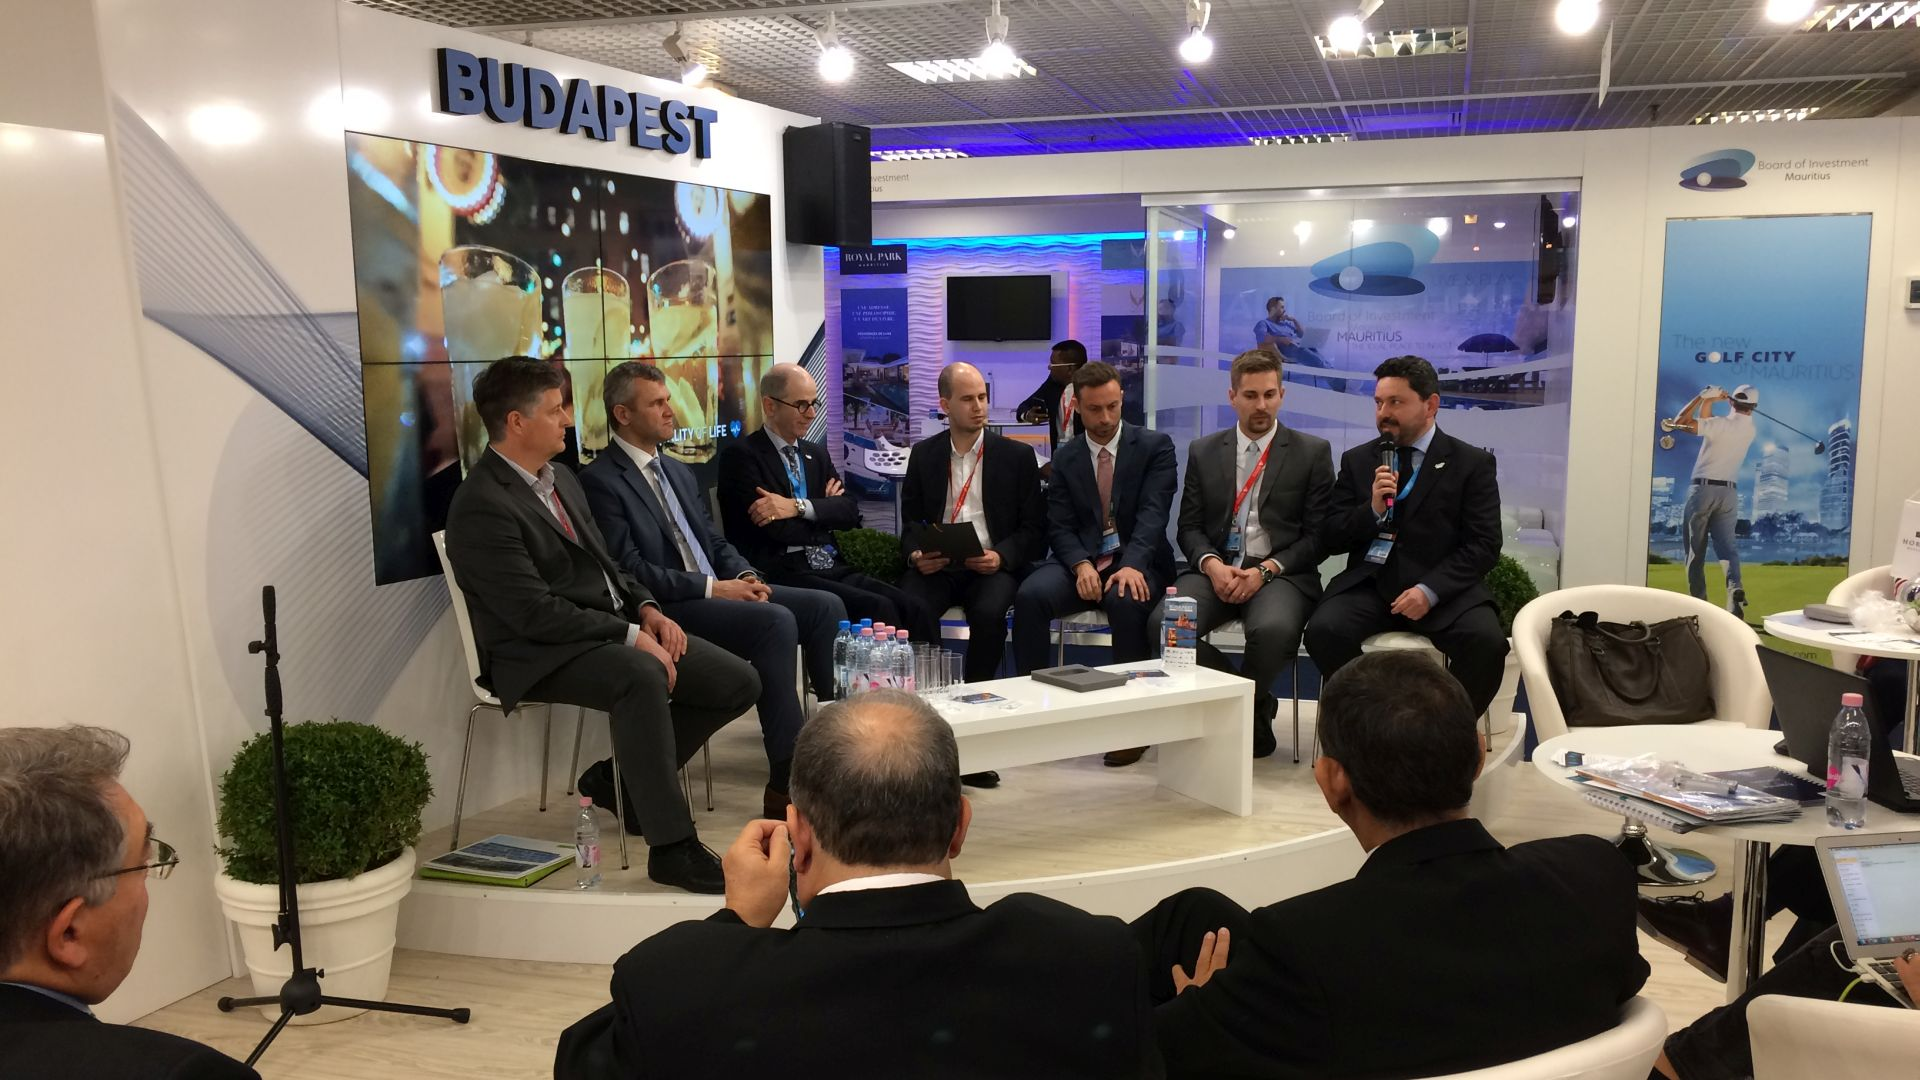 Roundtable-discussion at the Budapest booth